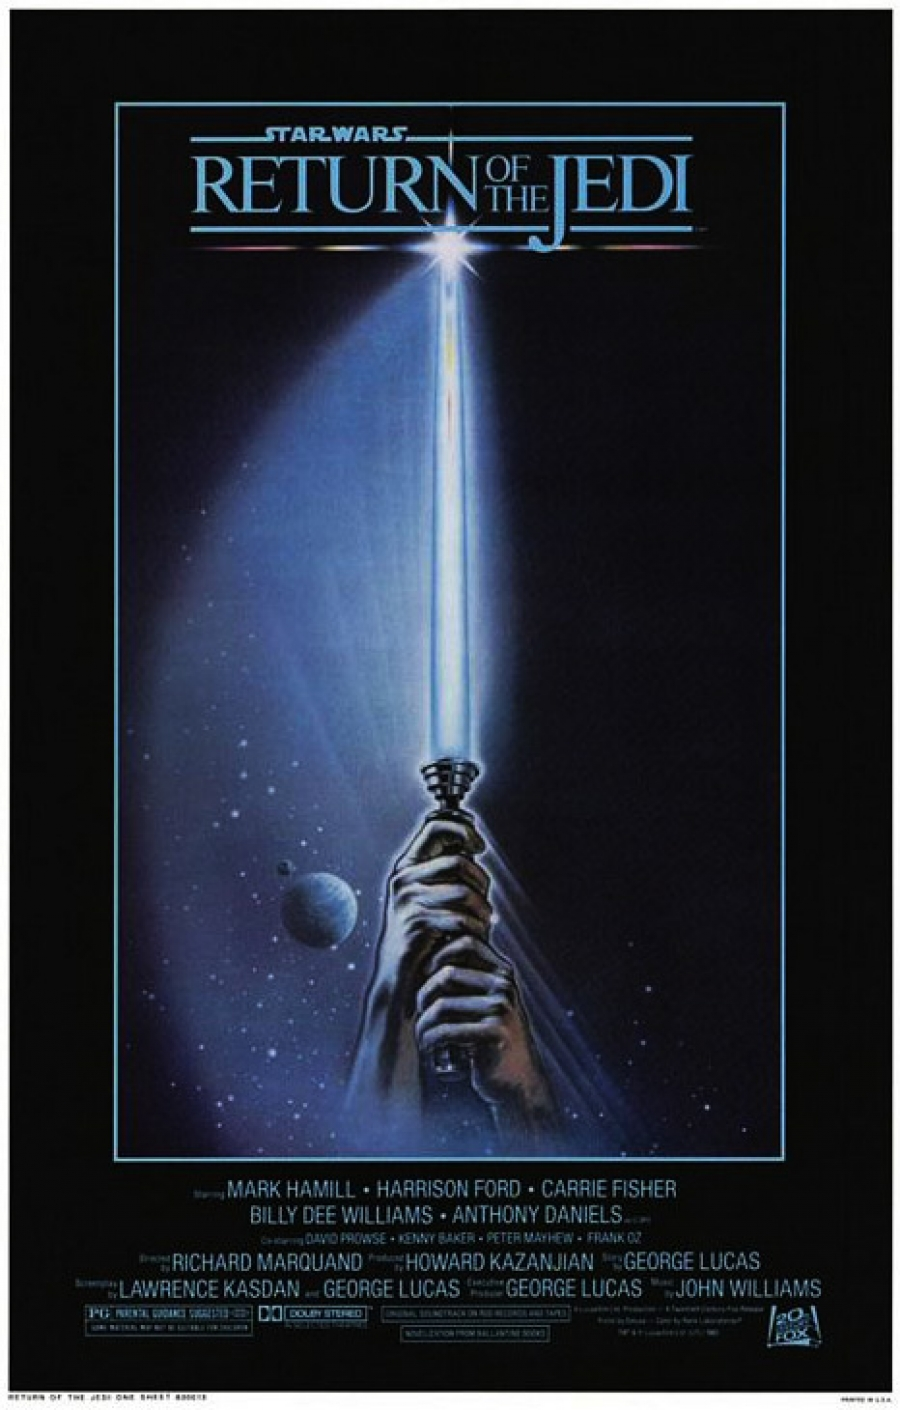 Remembering Return of the Jedi on its 30th Anniversary